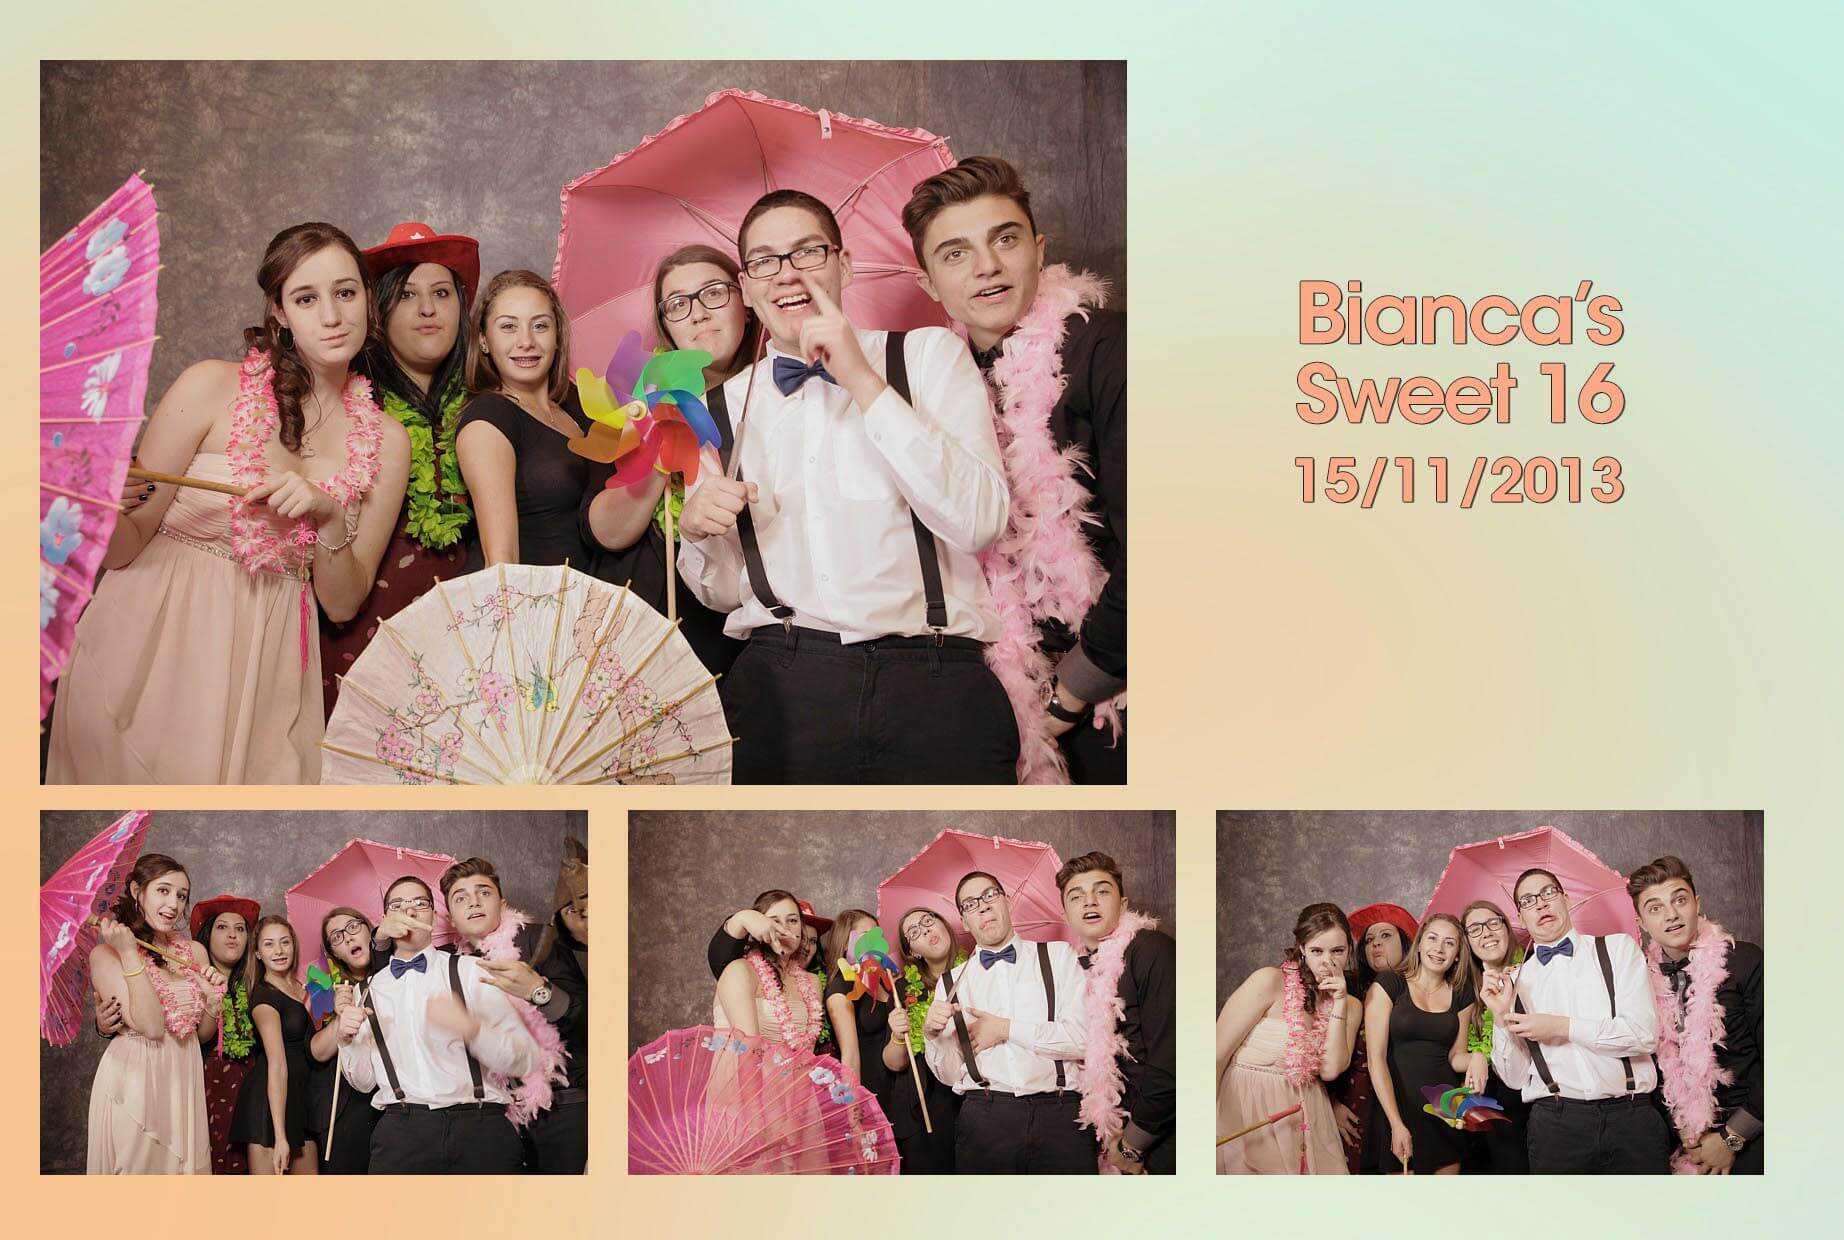 Toronto Party Photobooth Rental Photos Bianca Sweet 16